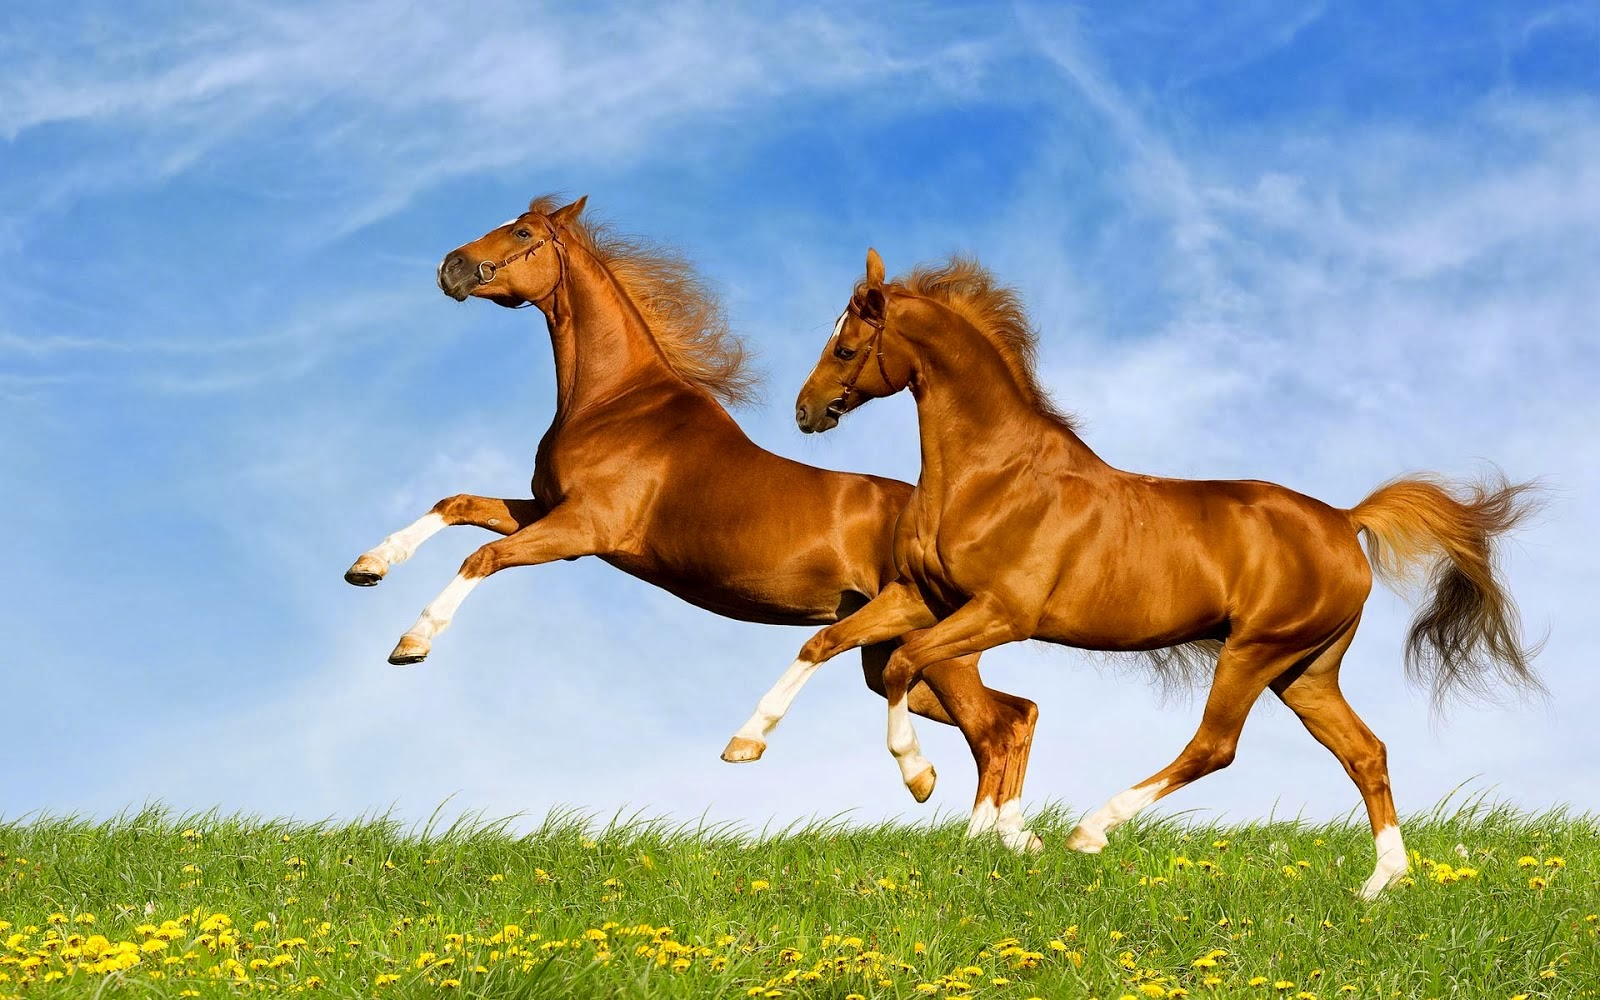 wallpapers desktop horse and make this HD wallpapers desktop 1600x1000